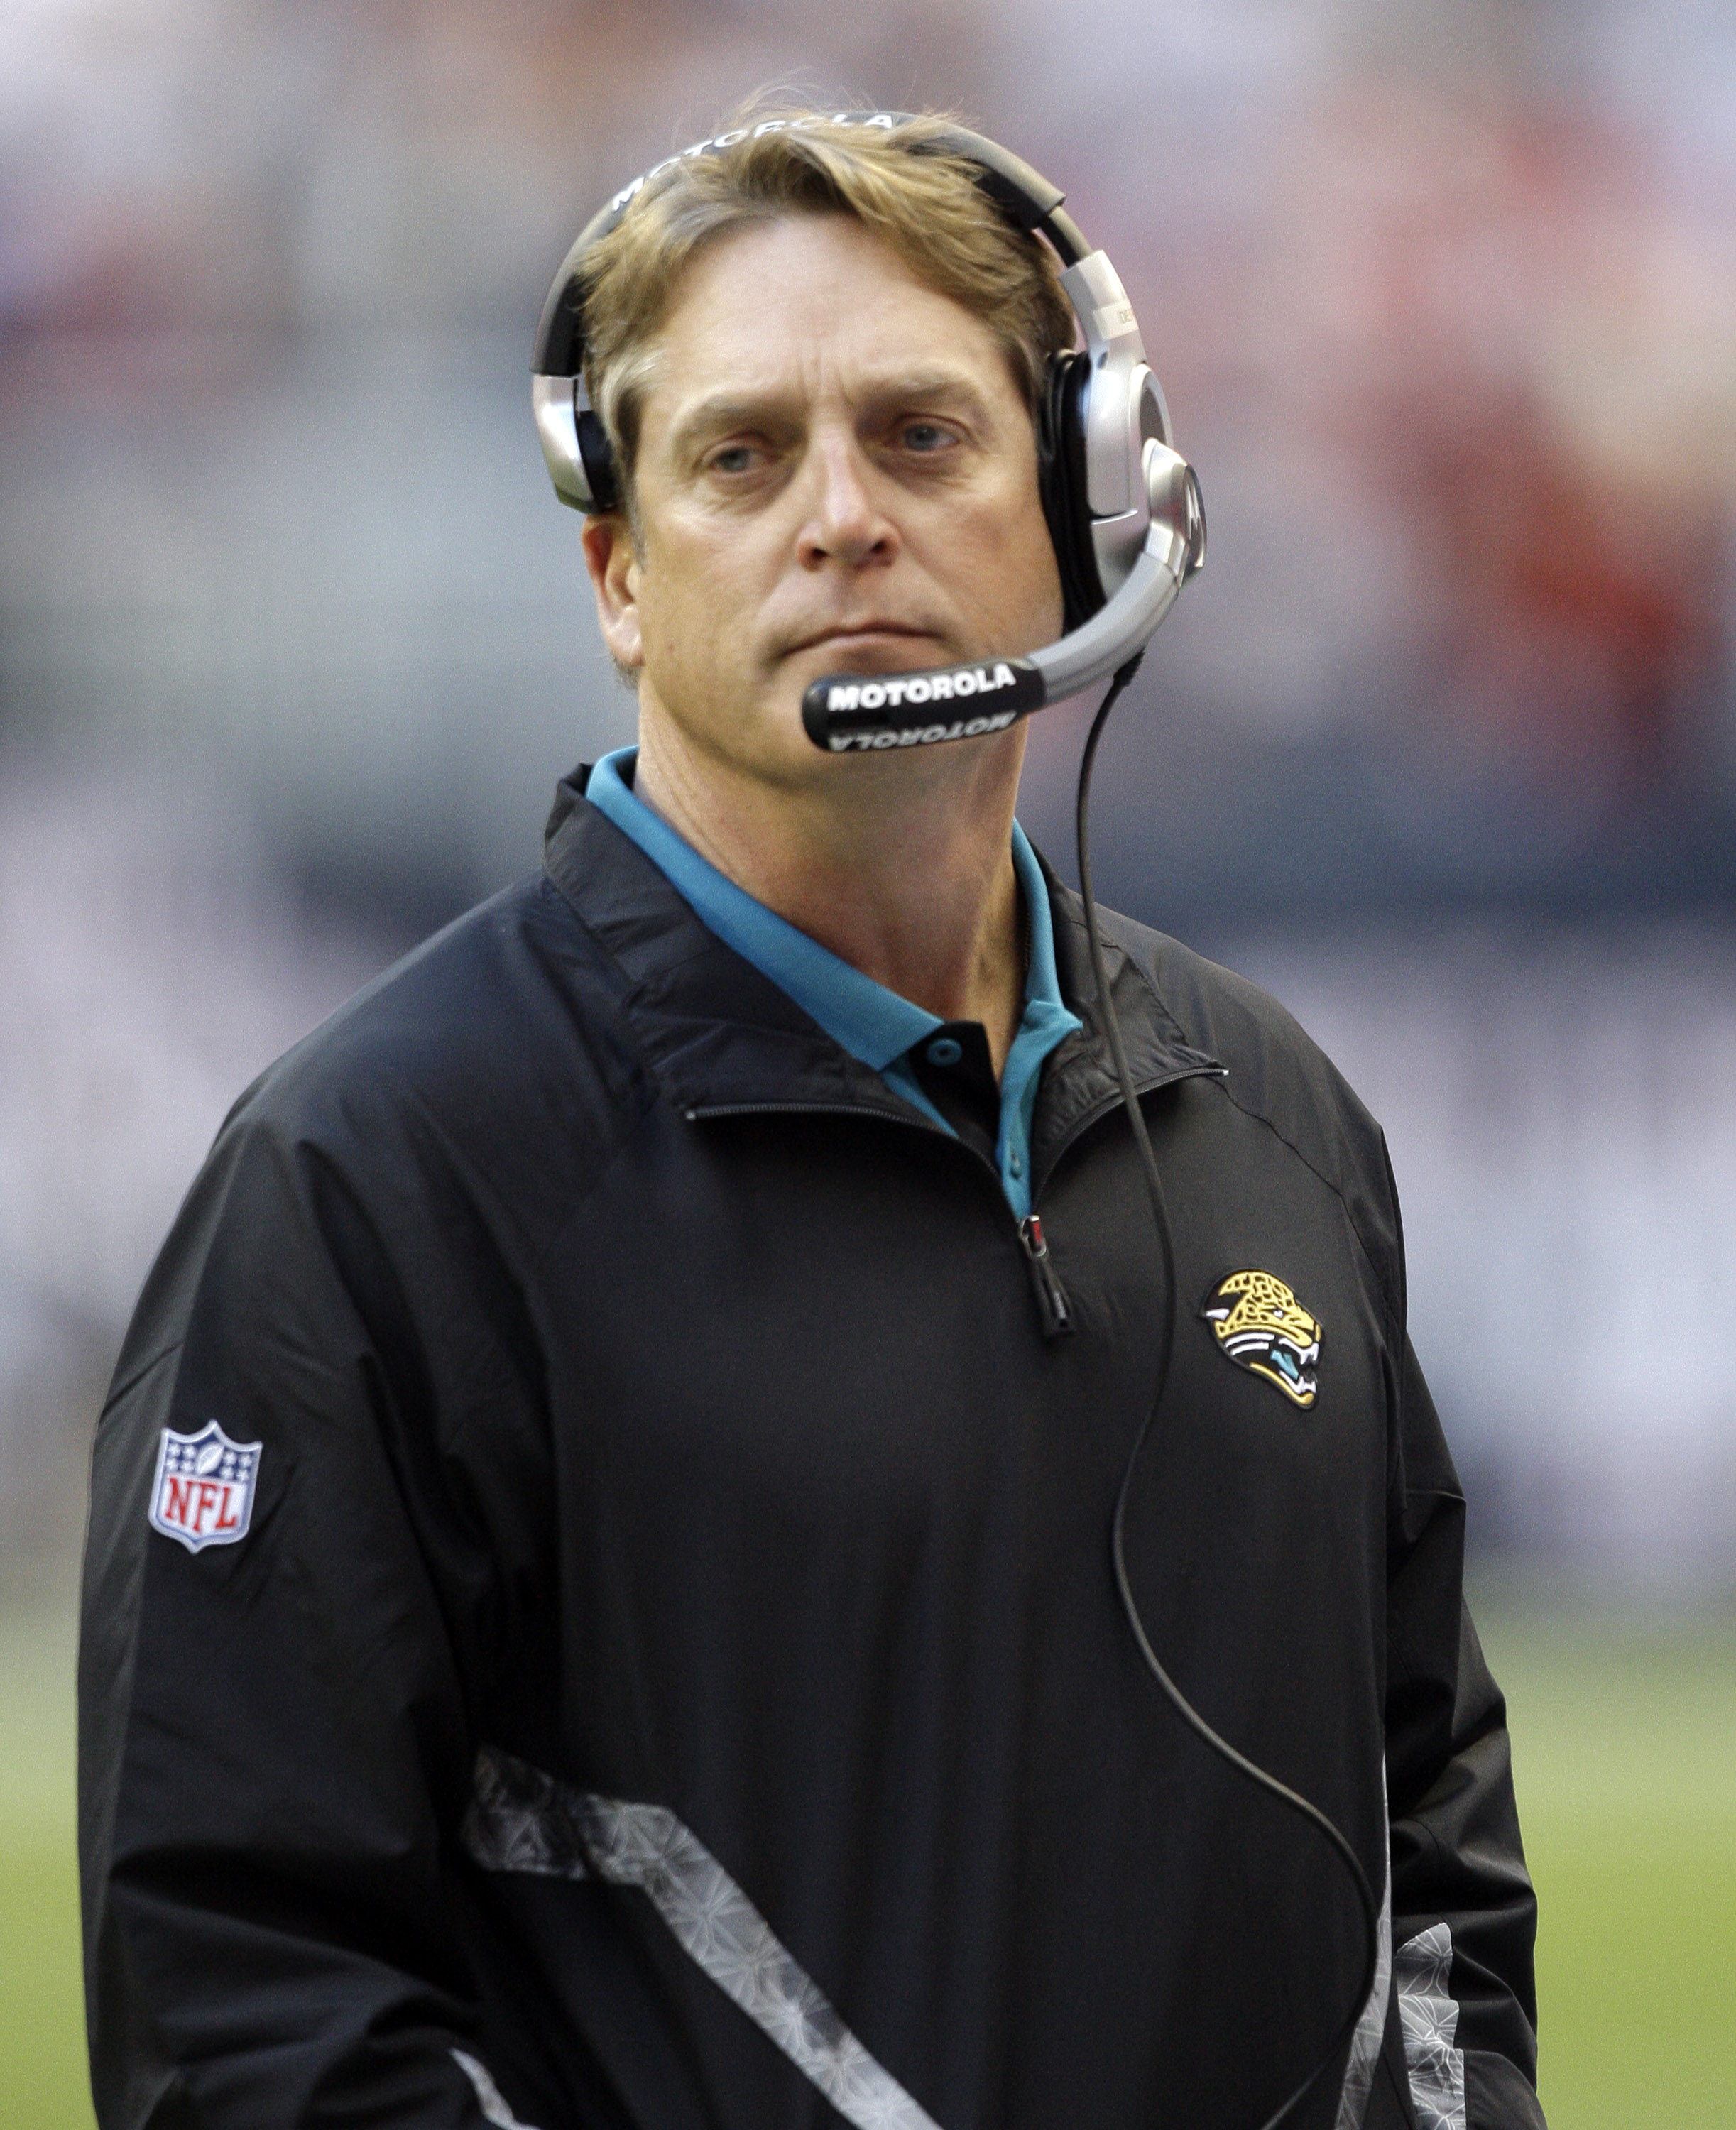 HOUSTON - JANUARY 02:  Head coach Jack Del Rio of the  Jacksonville Jaguars looks on from the sidelines during first half action against the Houston Texans at Reliant Stadium on January 2, 2011 in Houston, Texas.  (Photo by Bob Levey/Getty Images)